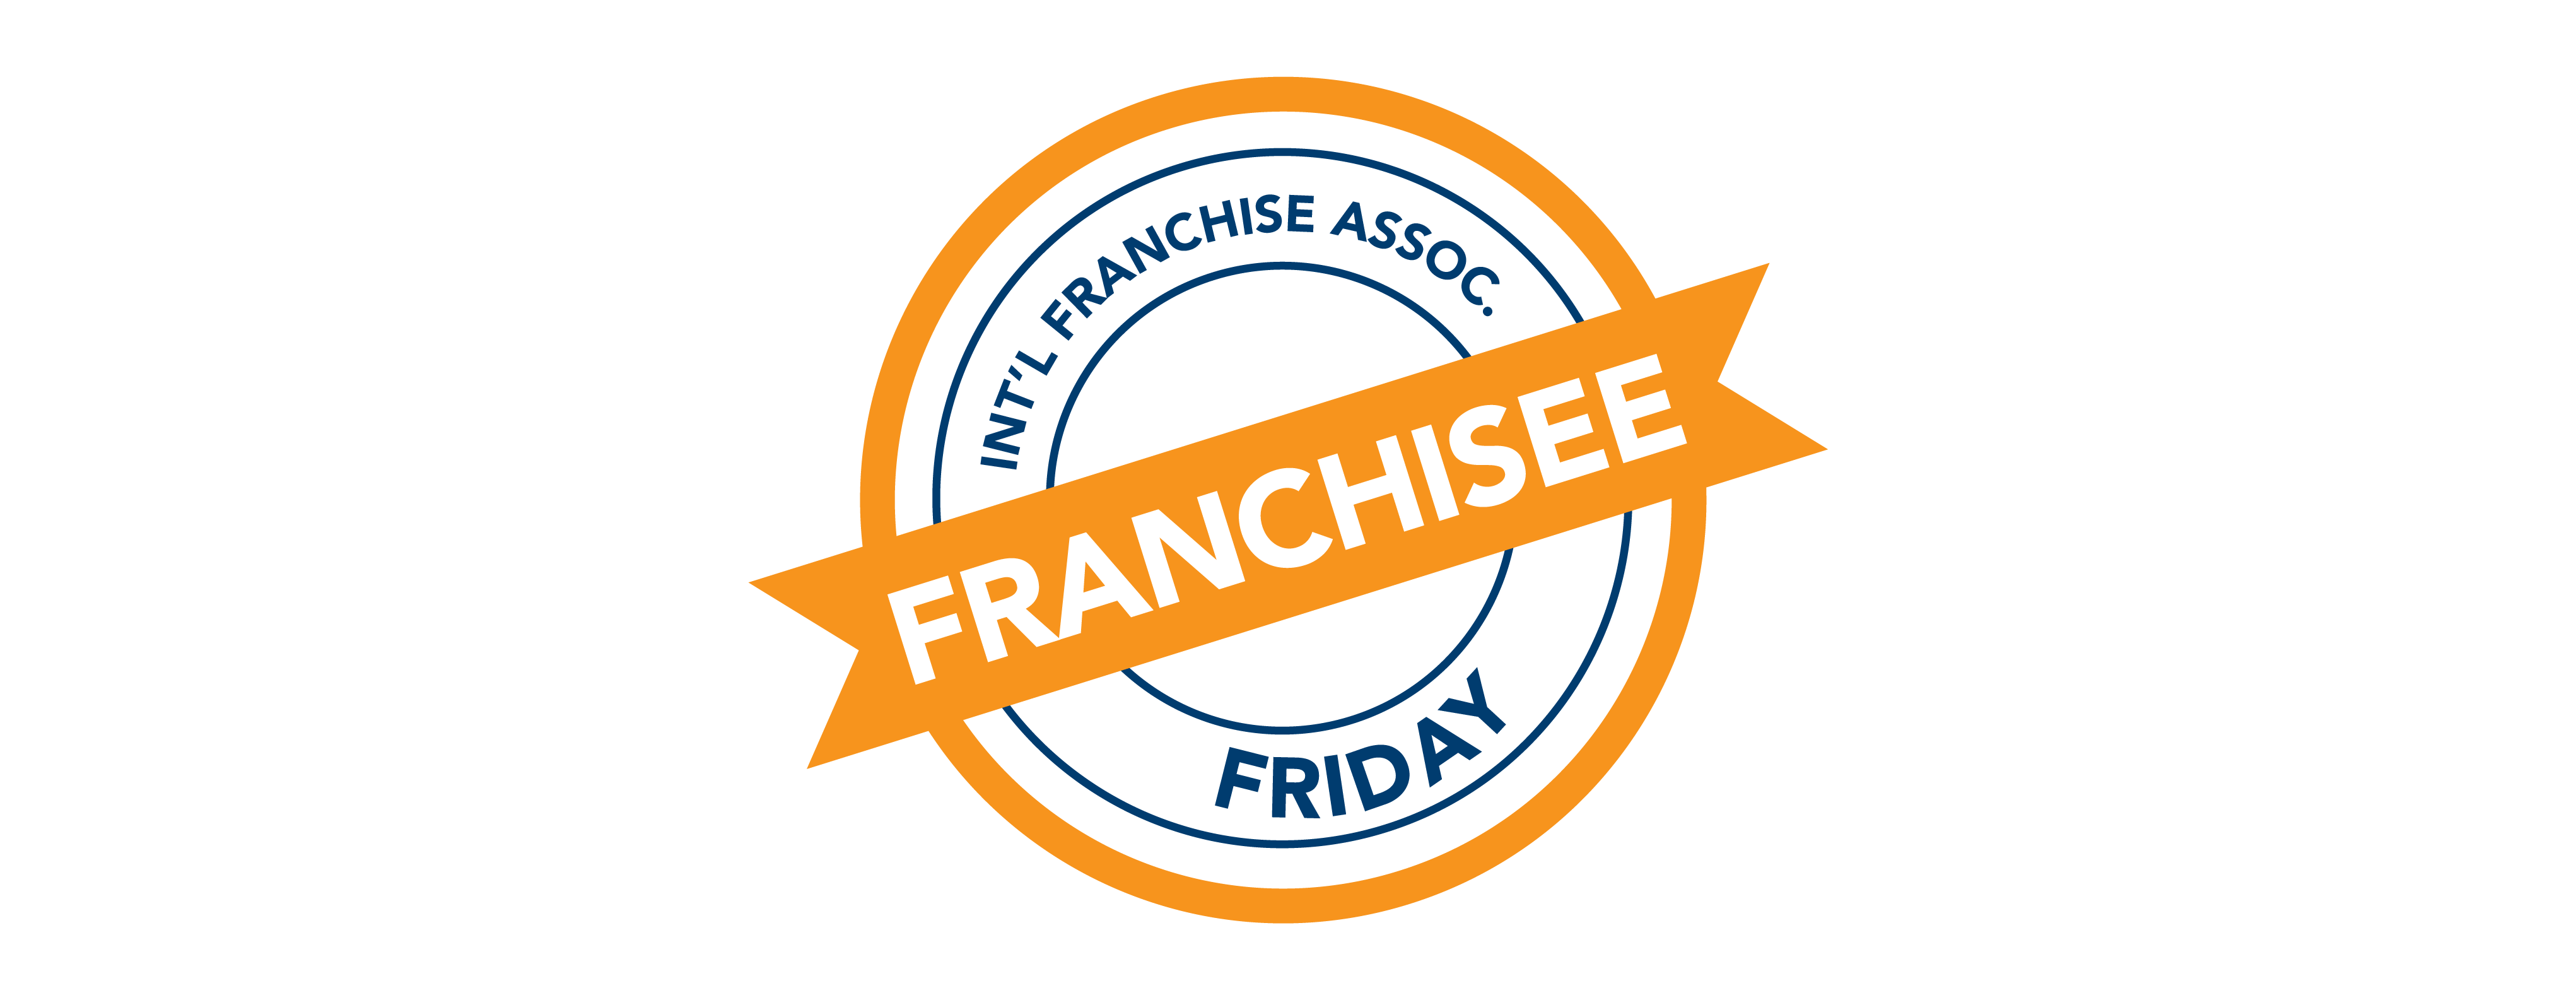 Christian Brothers Near Me >> Franchisee Friday Christian Brothers Automotive Ifa